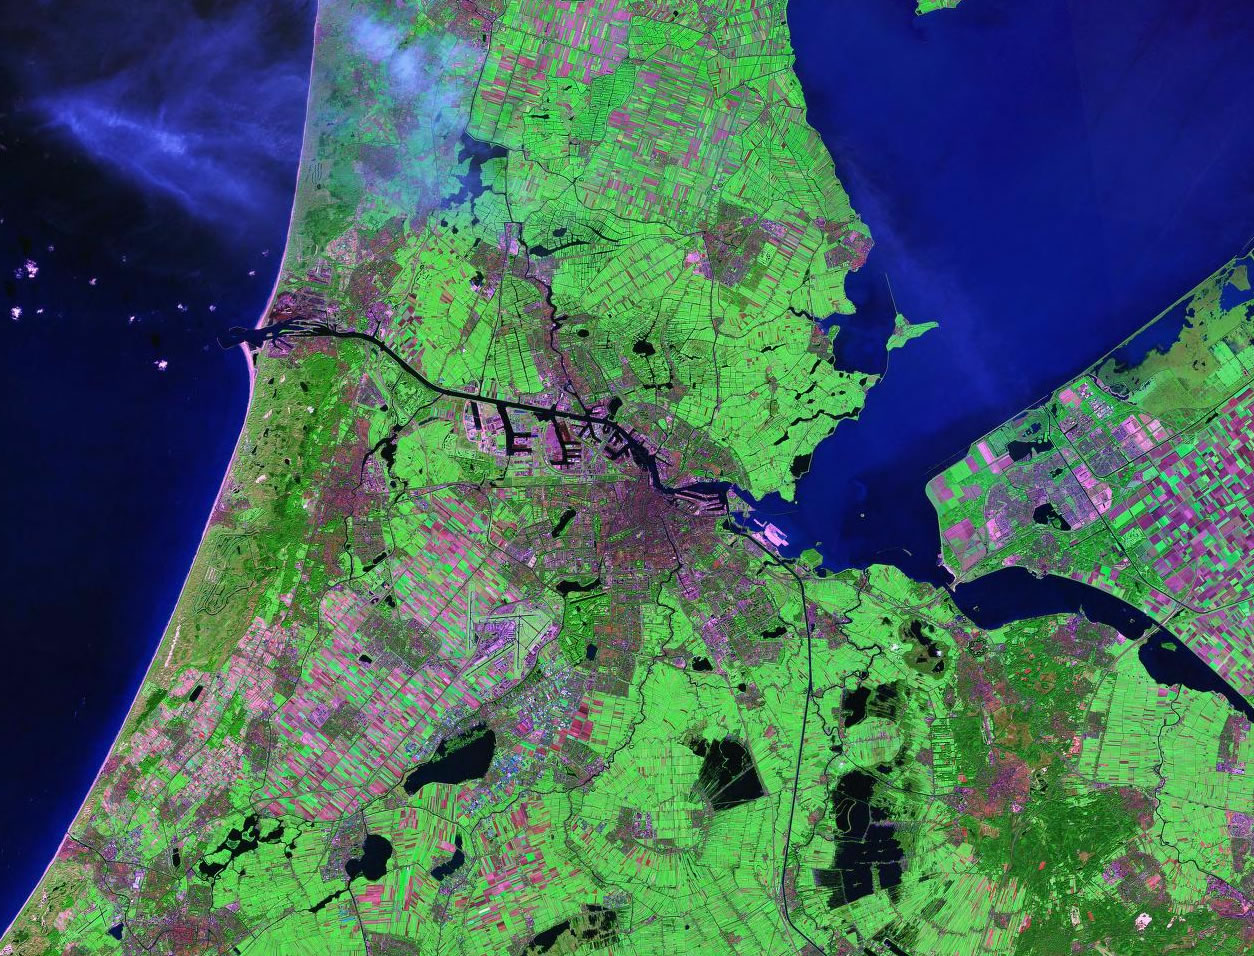 Amsterdam Netherlands satellite image map